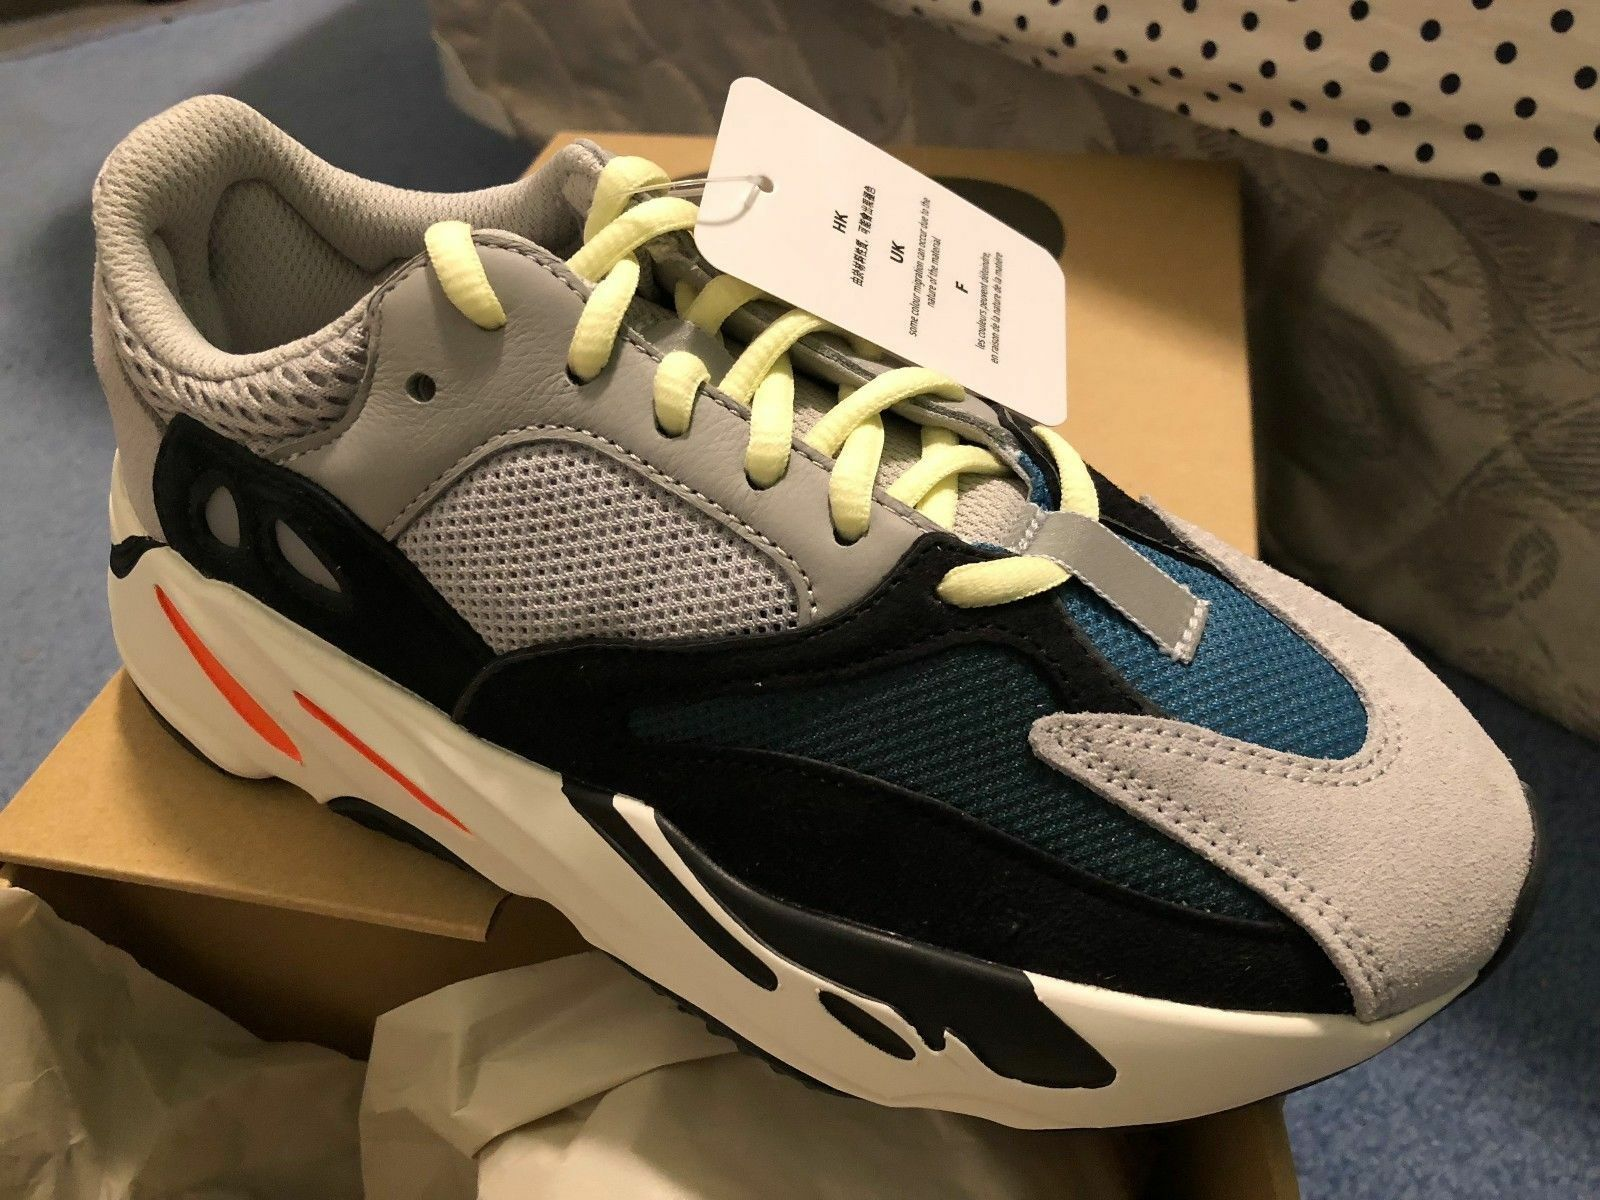 IN HAND NEW ADIDAS YEEZY BOOST 700 WAVE RUNNER B75571 Price reduction